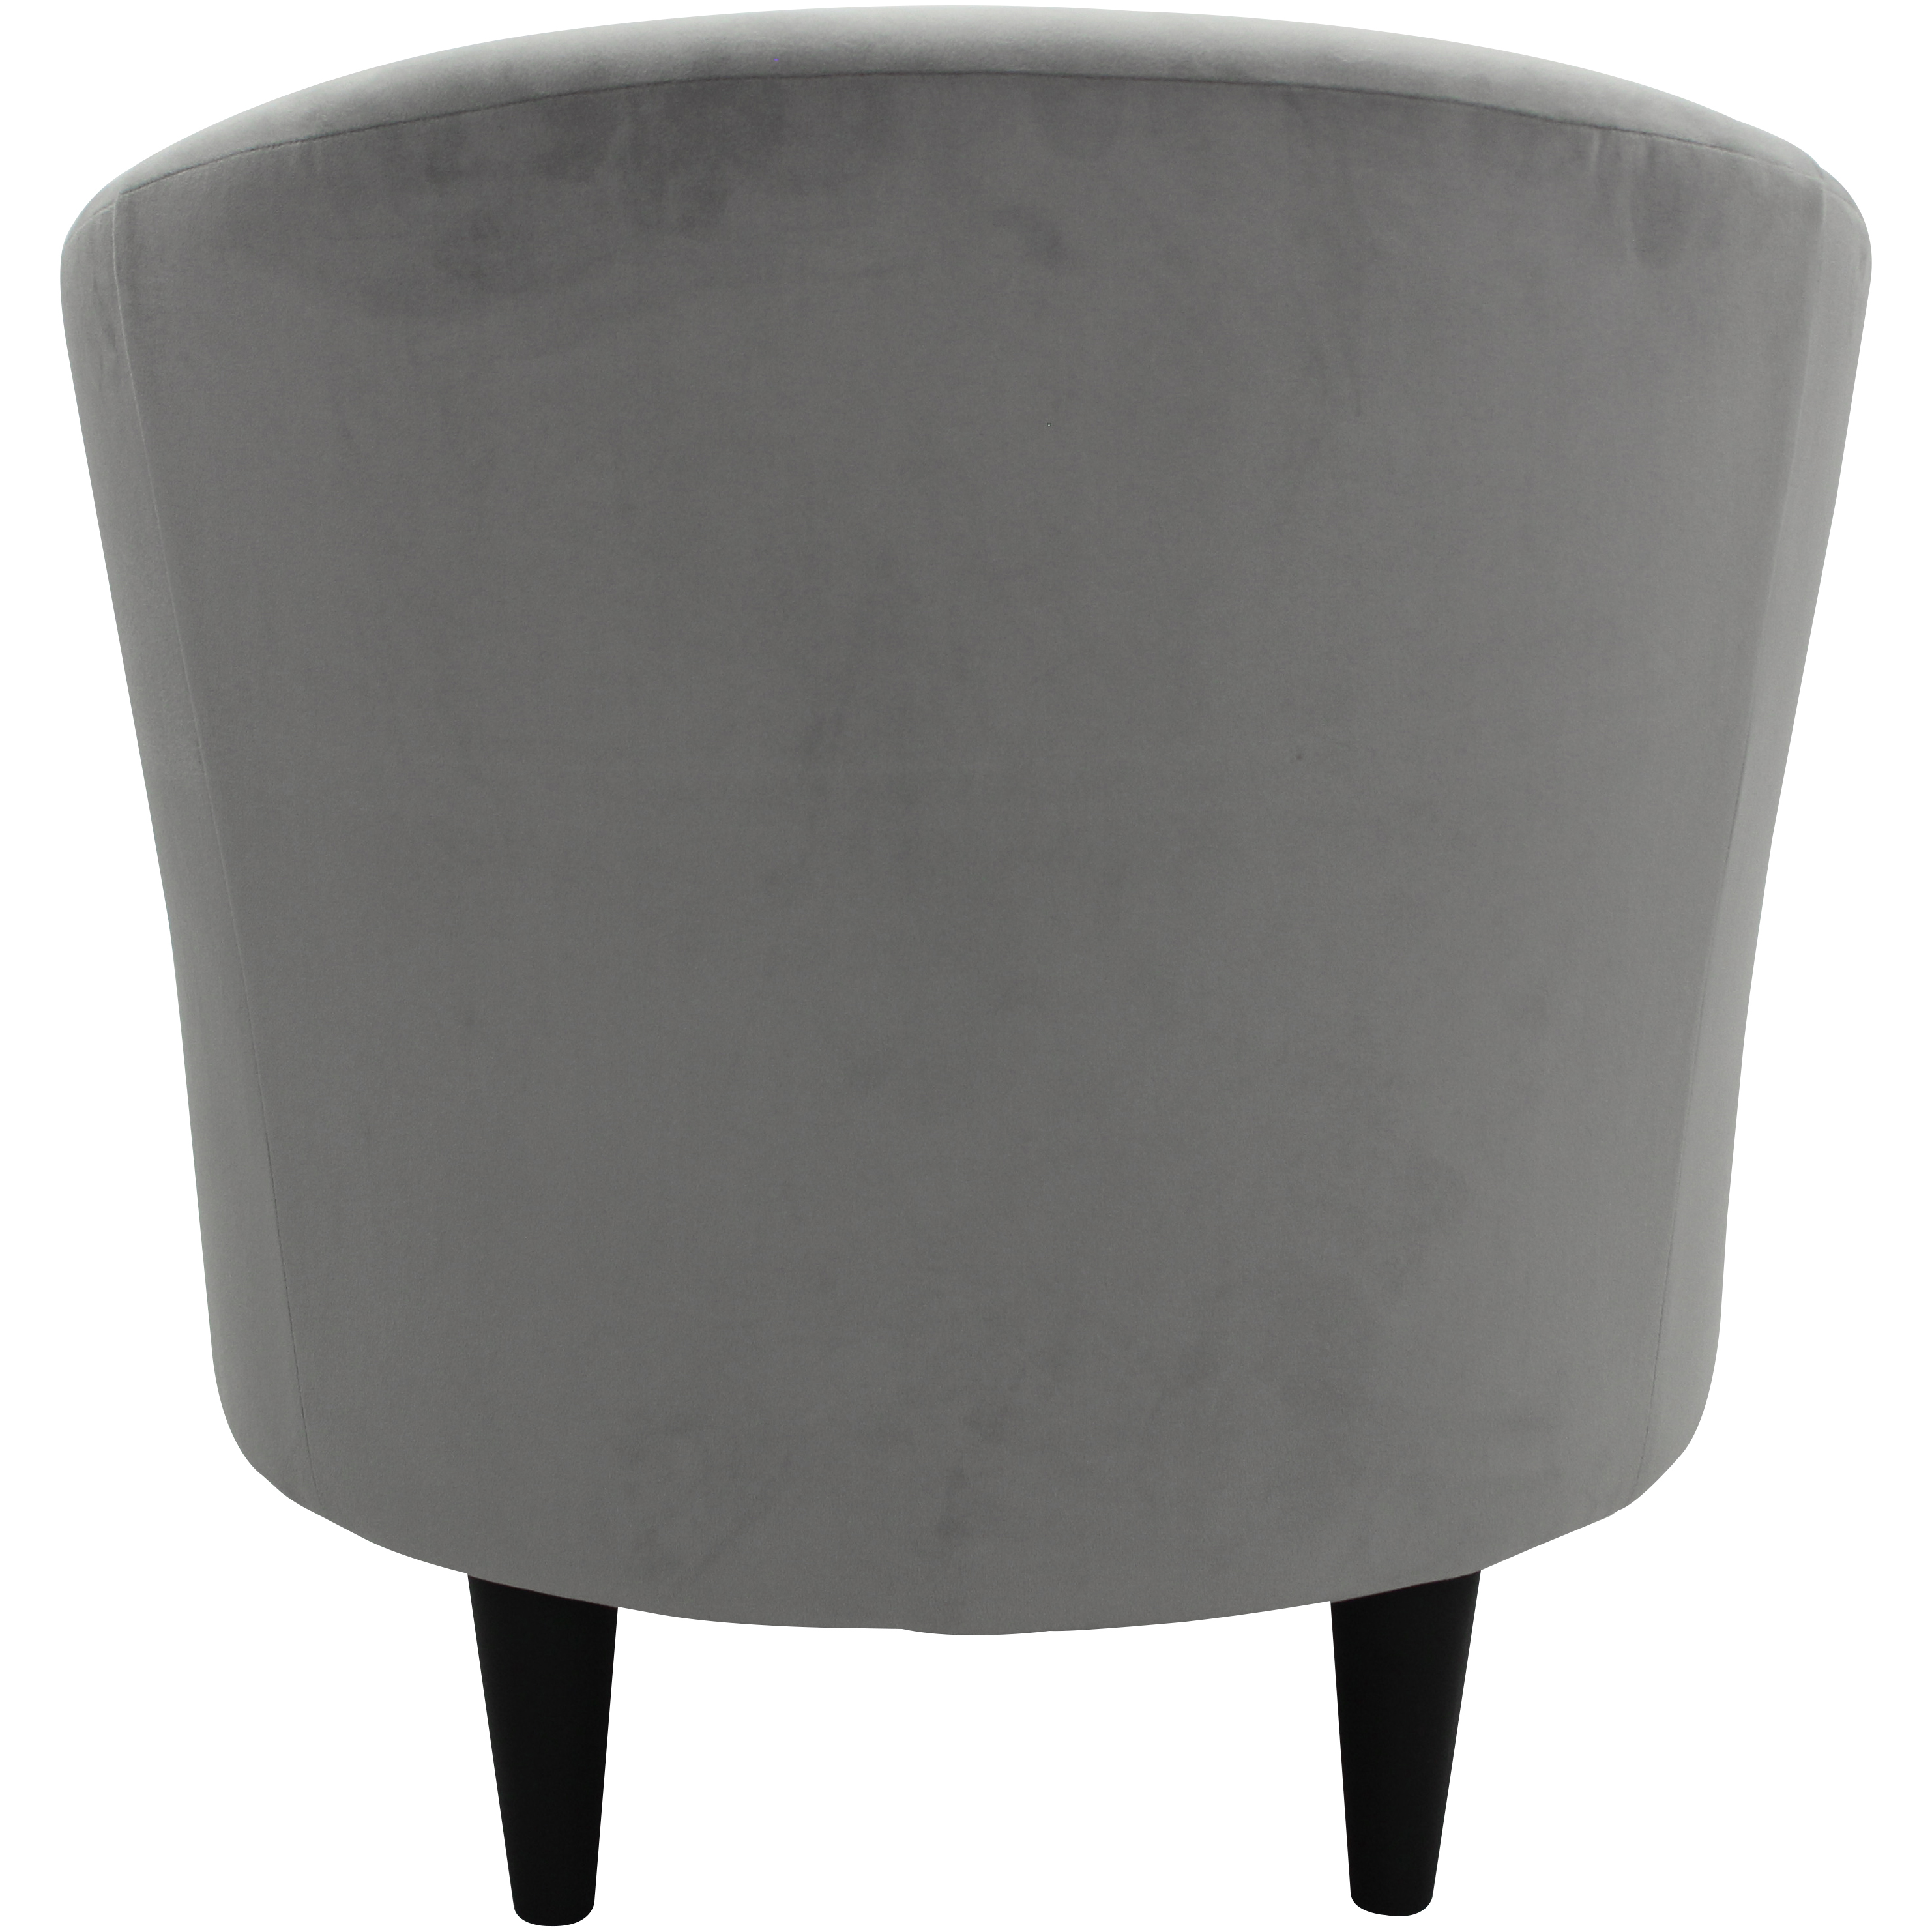 Delicieux Mainstays Microfiber Tub Accent Chair   Walmart.com